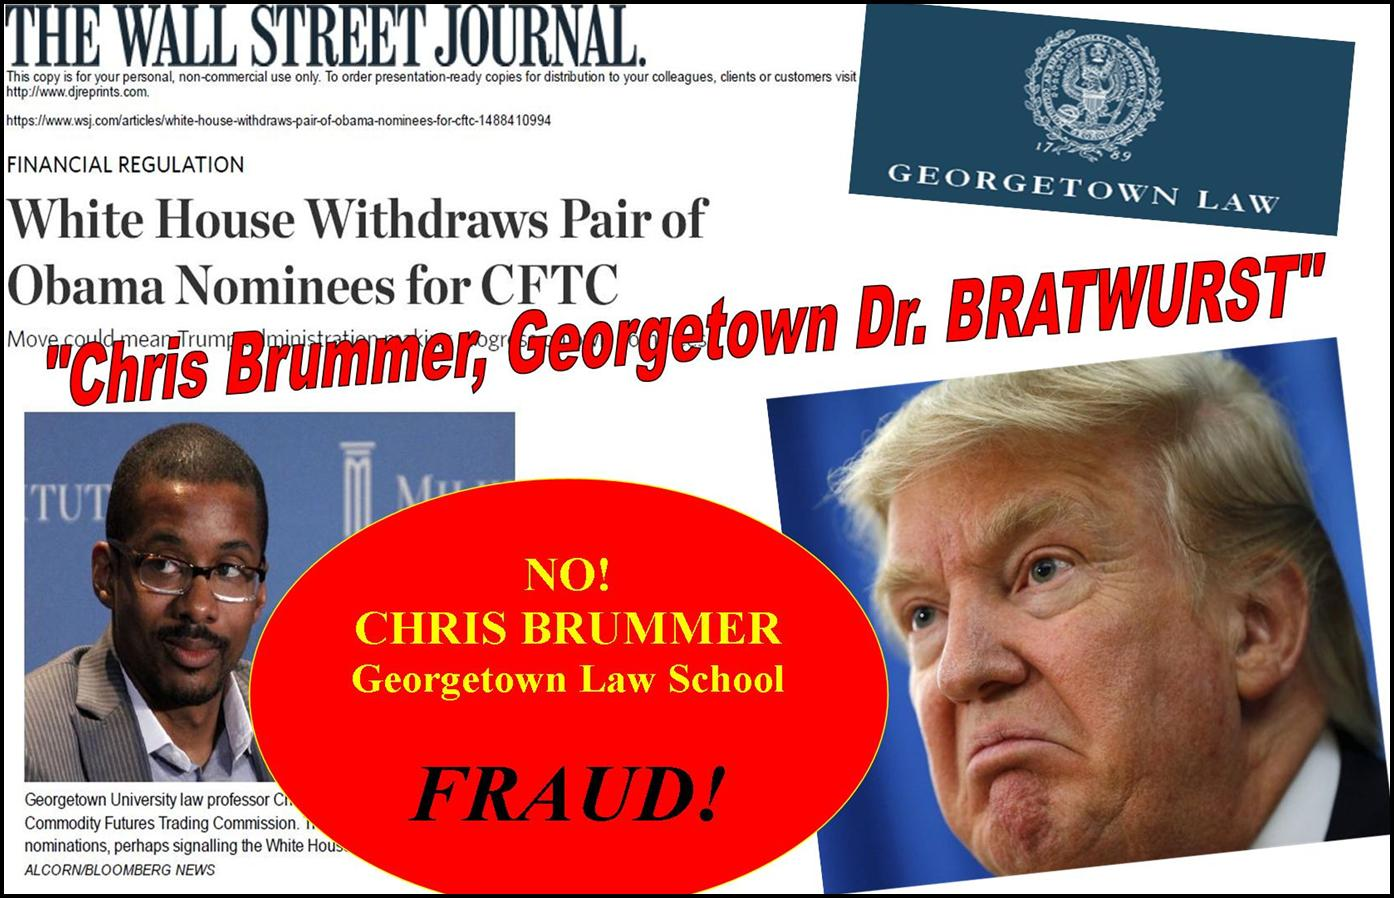 President Trump Dumps Georgetown Law Professor Chris Brummer CFTC Nomination, Fraud Cited